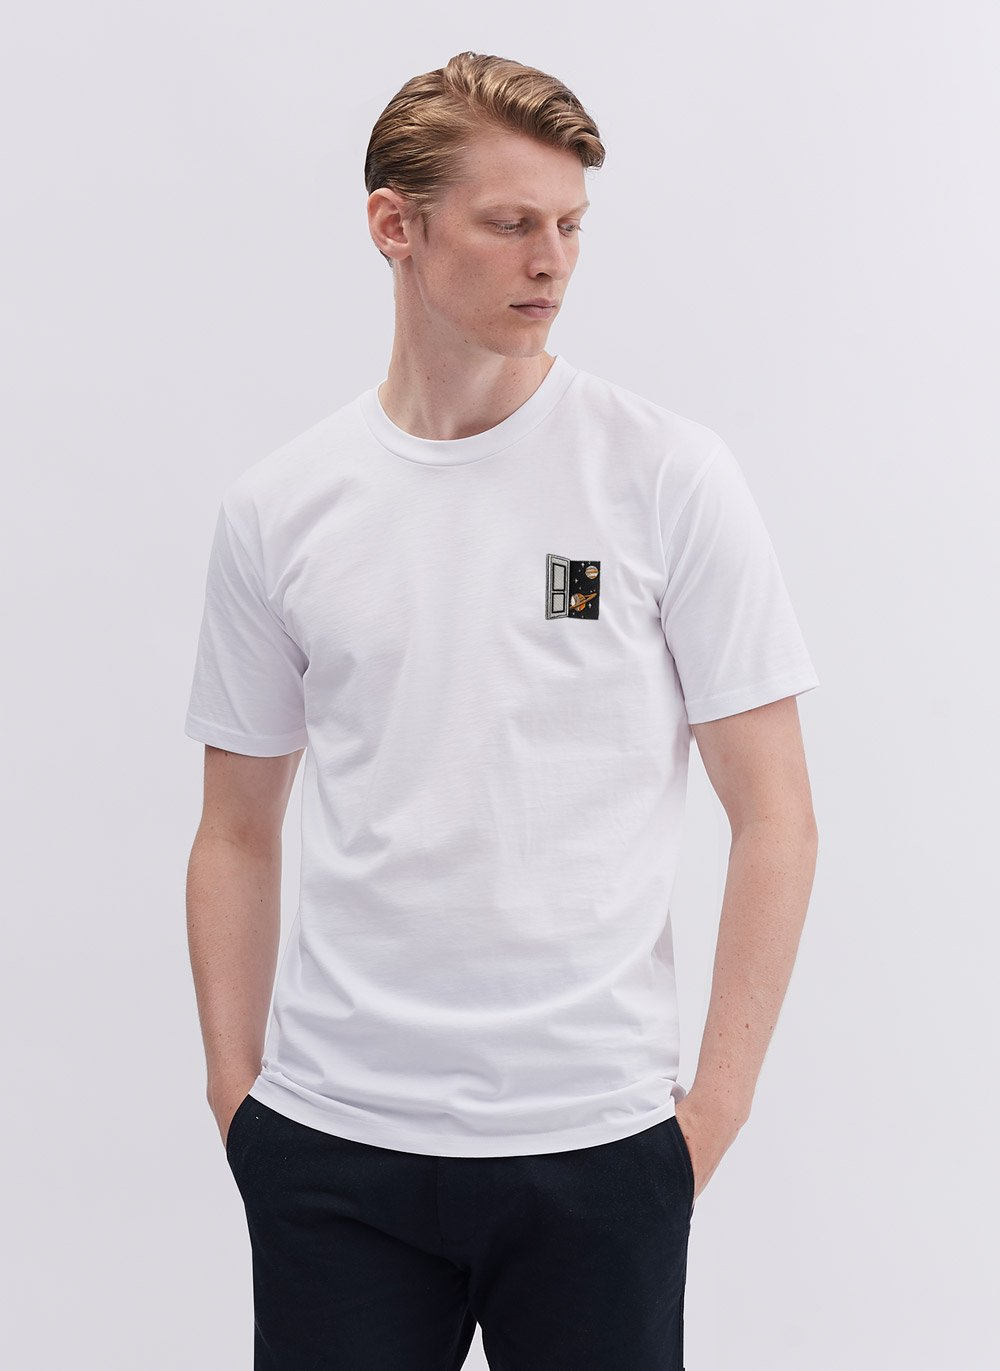 T Shirt | Spacedoor | White